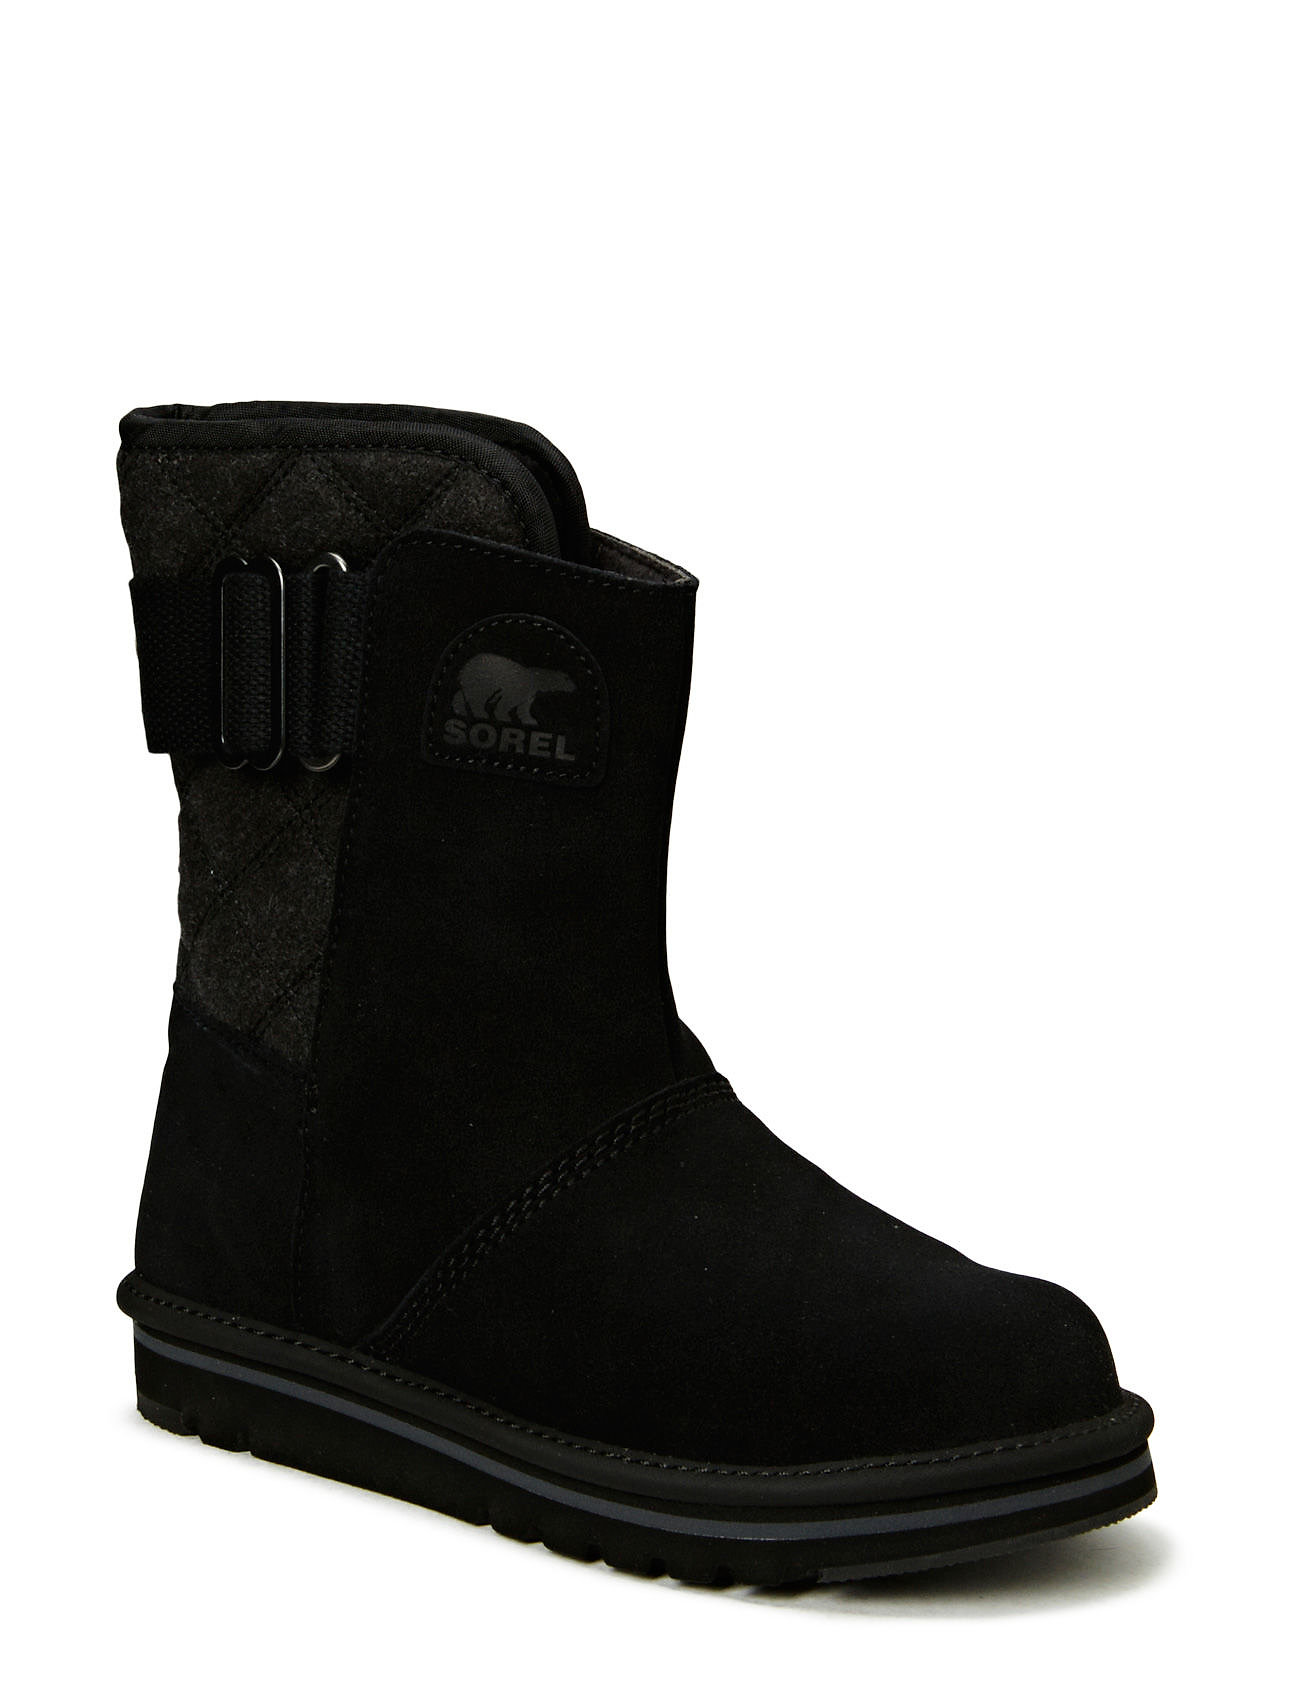 Sorel NEWBIE - BLACK, GRILL